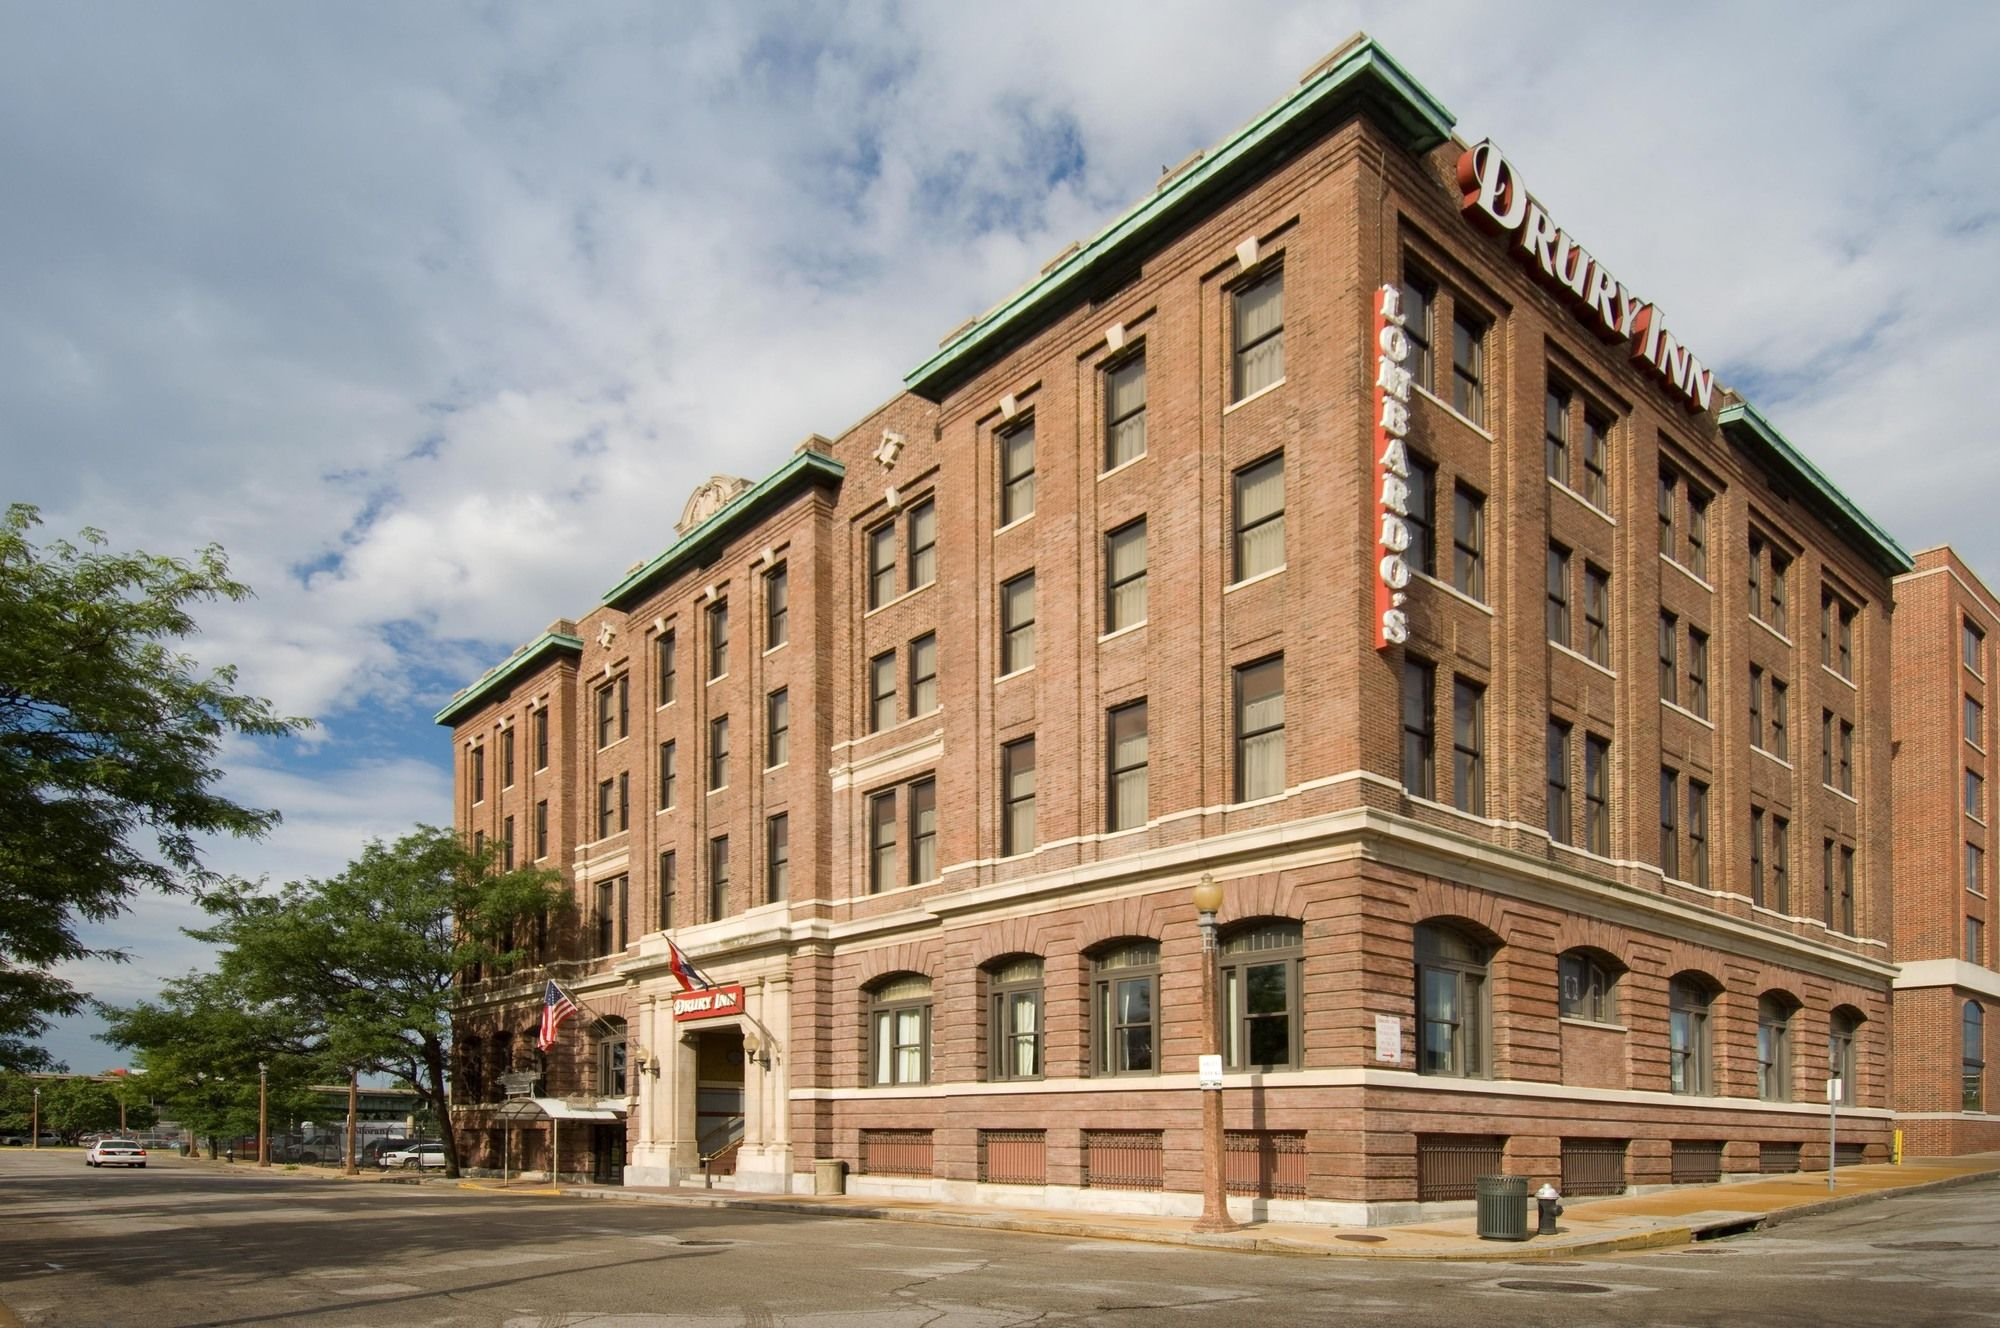 St Louis Hotel Coupons for St Louis, Missouri - FreeHotelCoupons.com